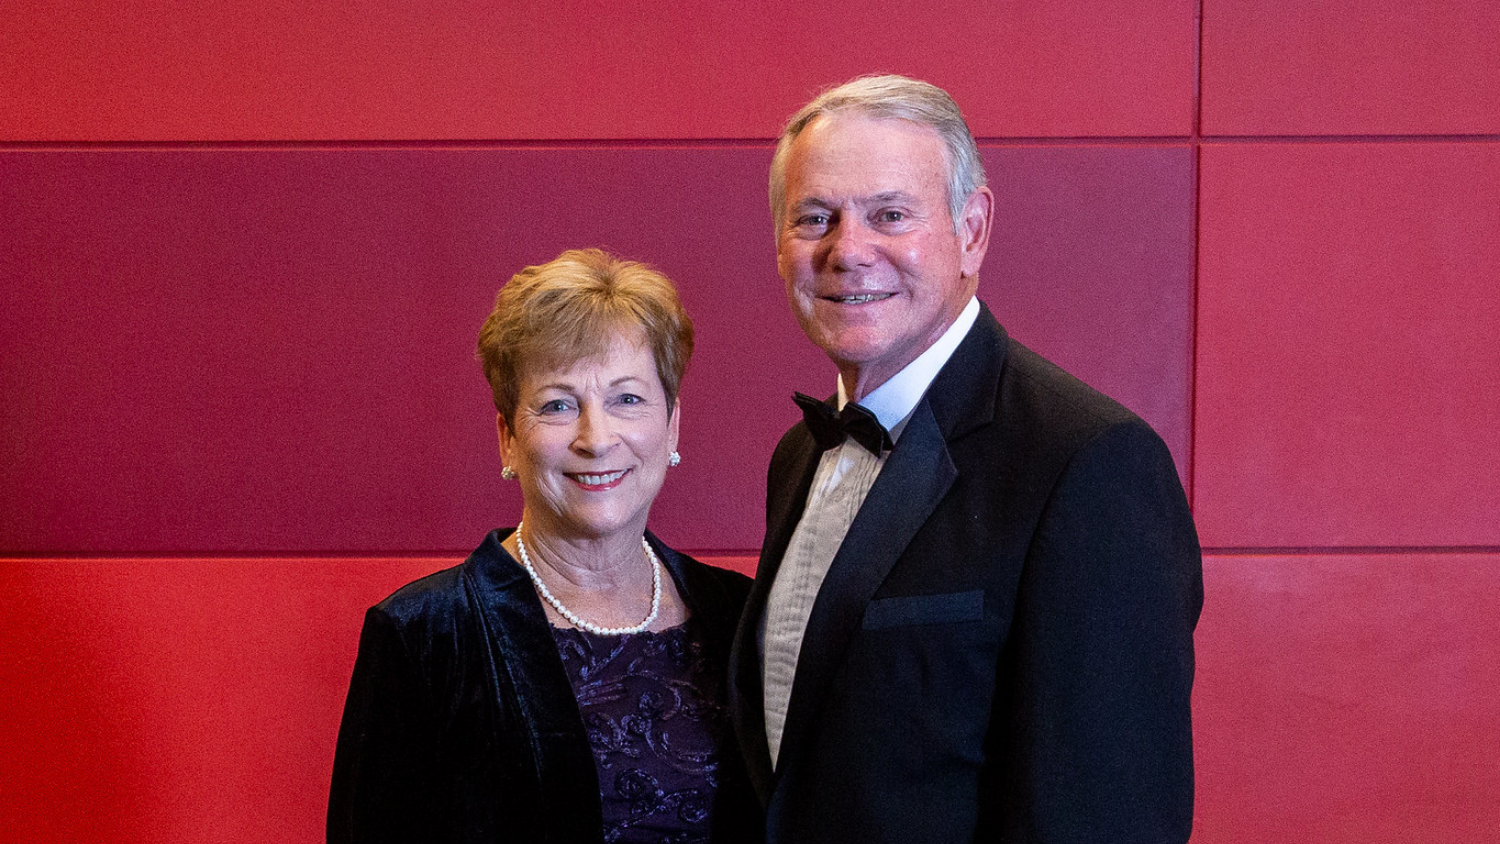 Richard and Marcia Reich